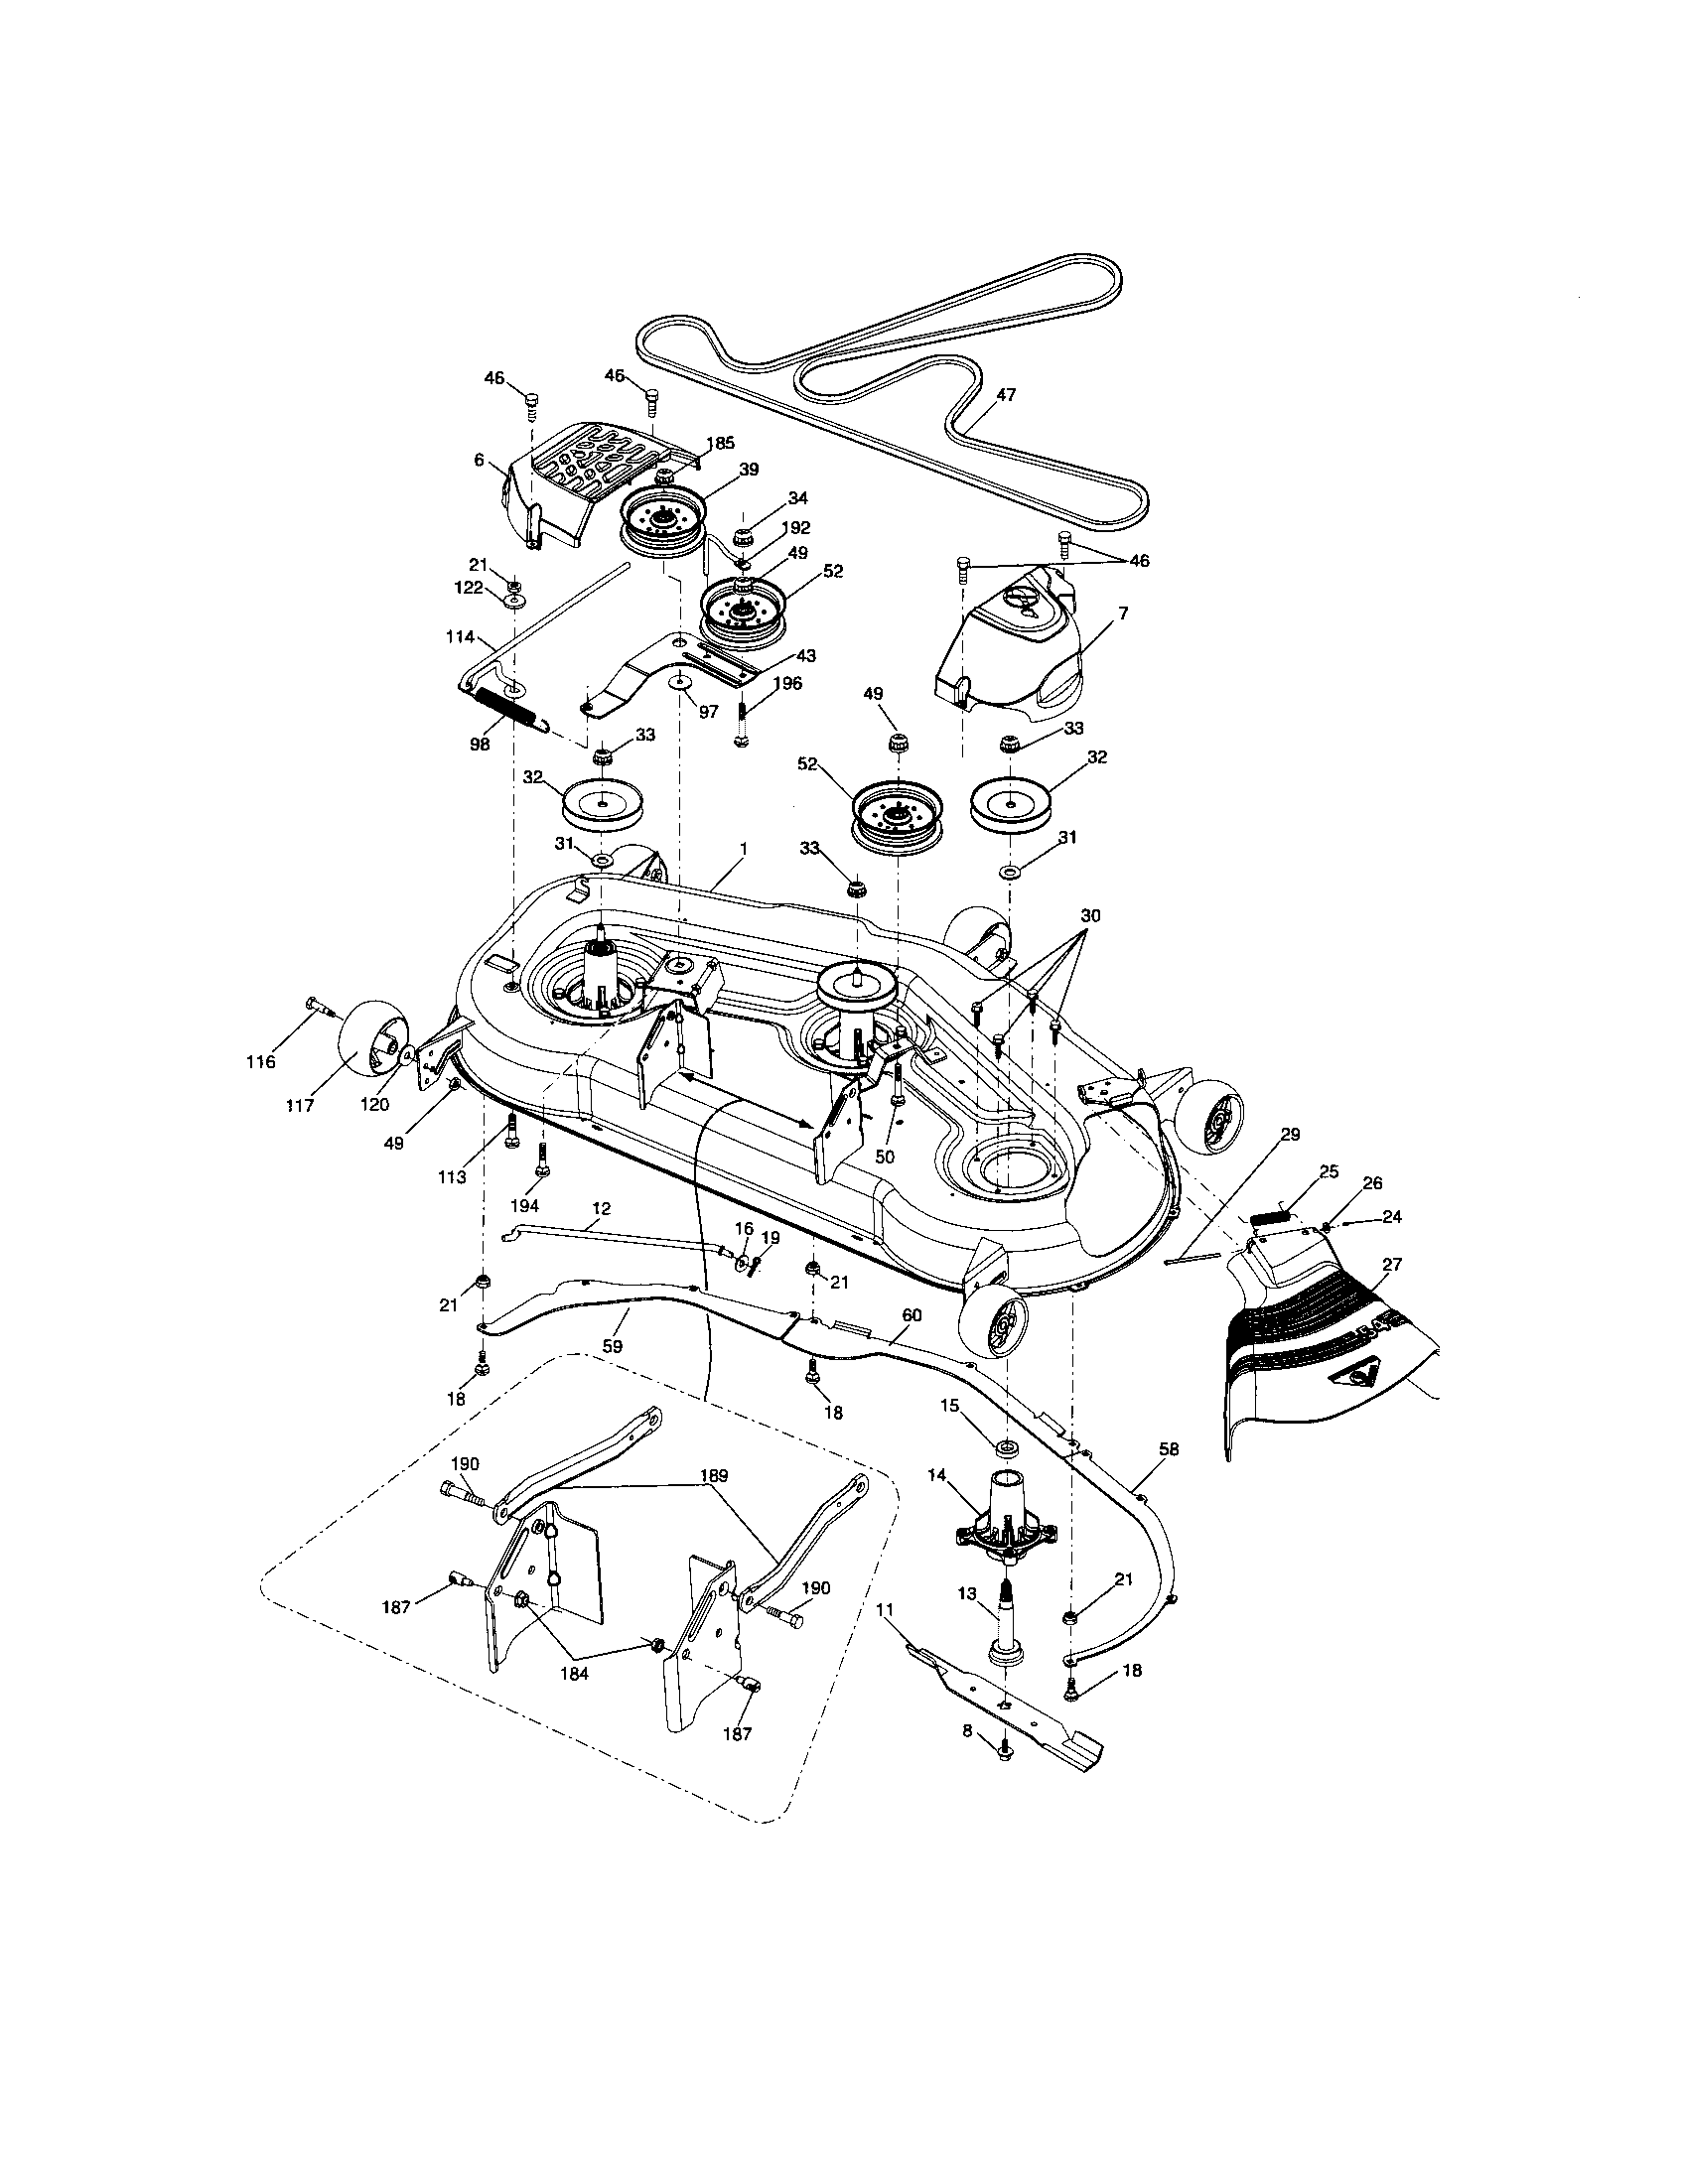 Chassis And Enclosures Diagram And Parts List For Craftsman Riding